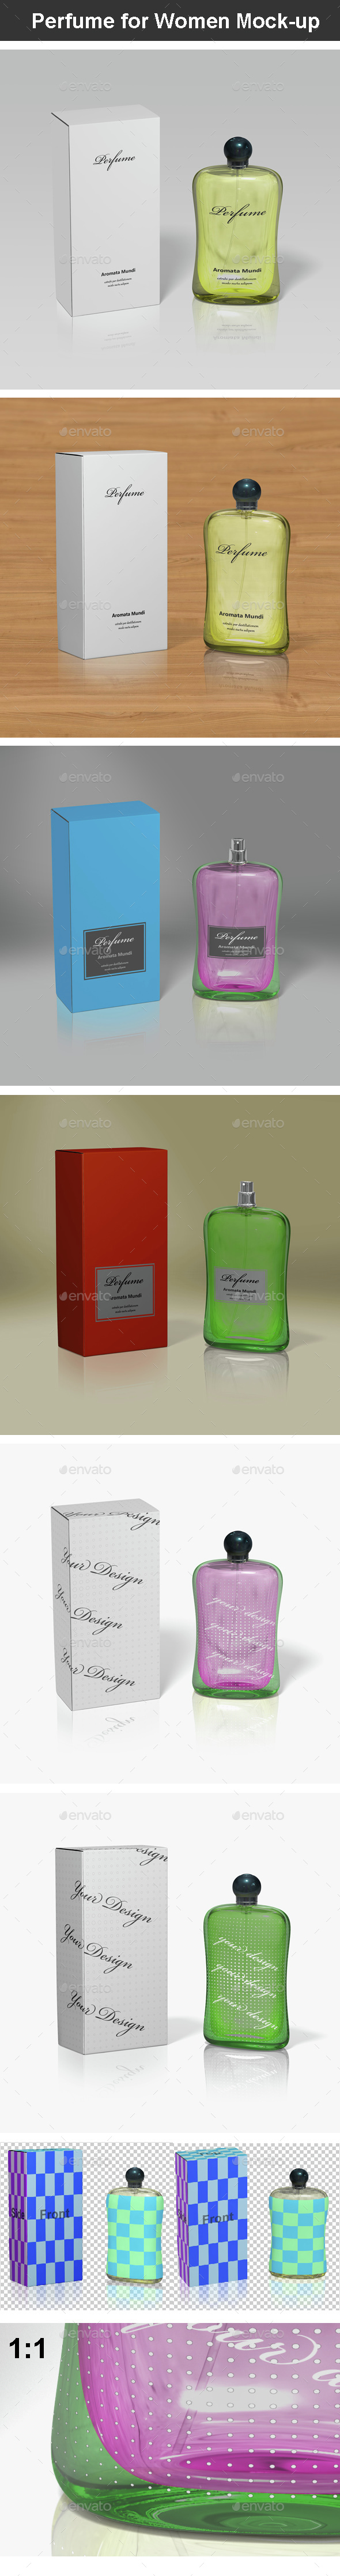 Perfume for Women Mock-up - Beauty Packaging